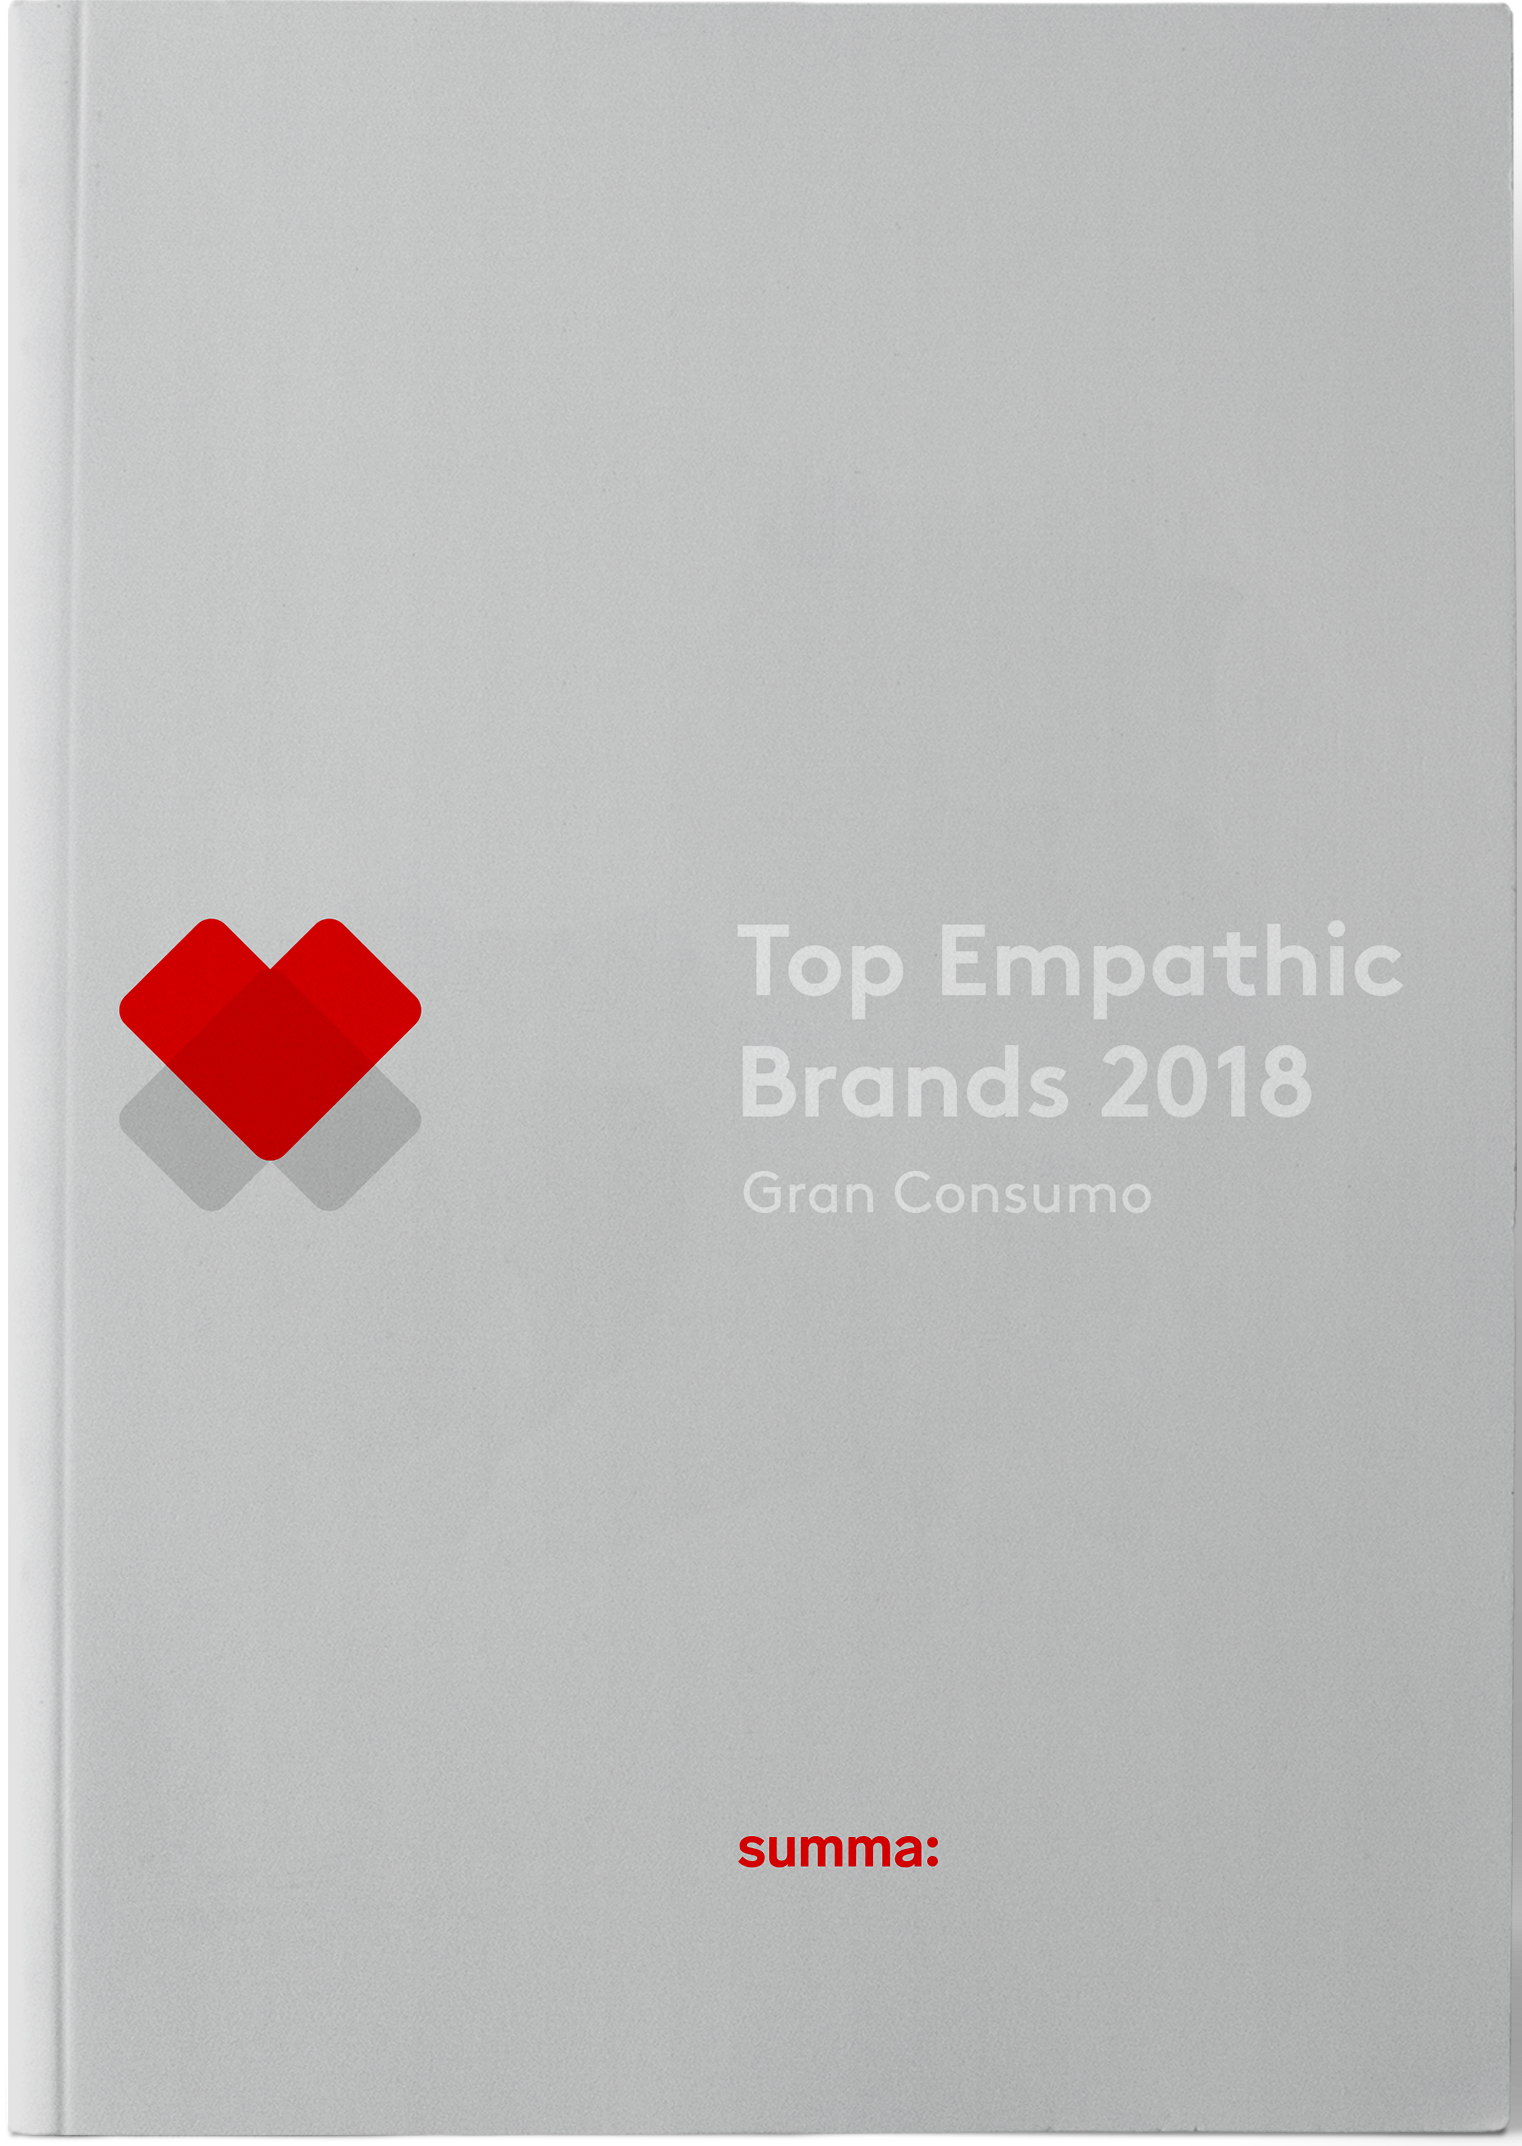 Top Empathic Brands Gran Consumo